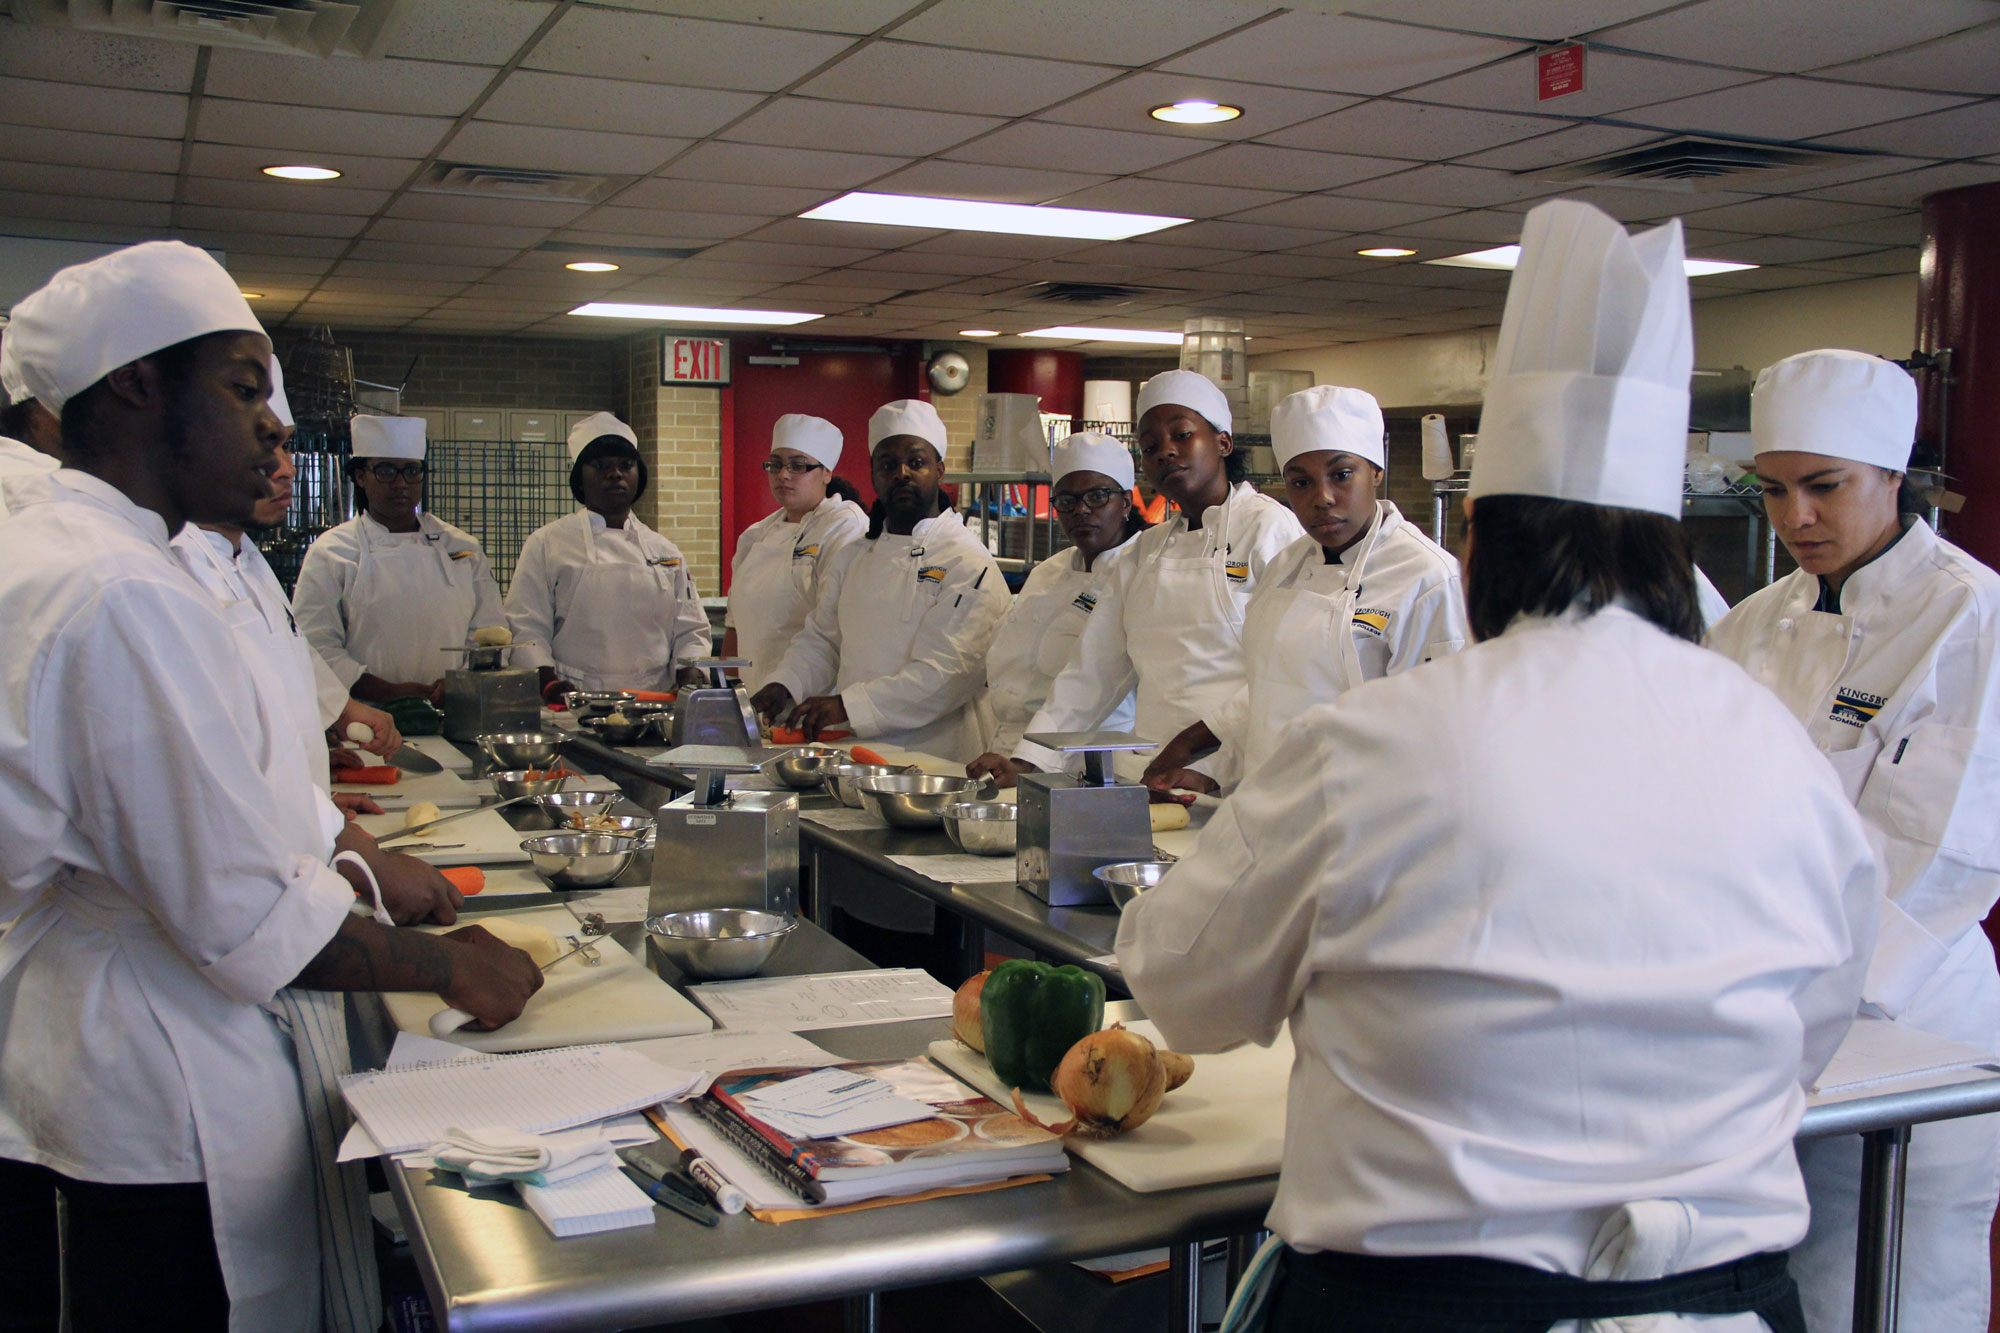 Cooking courses and classes in culinary school